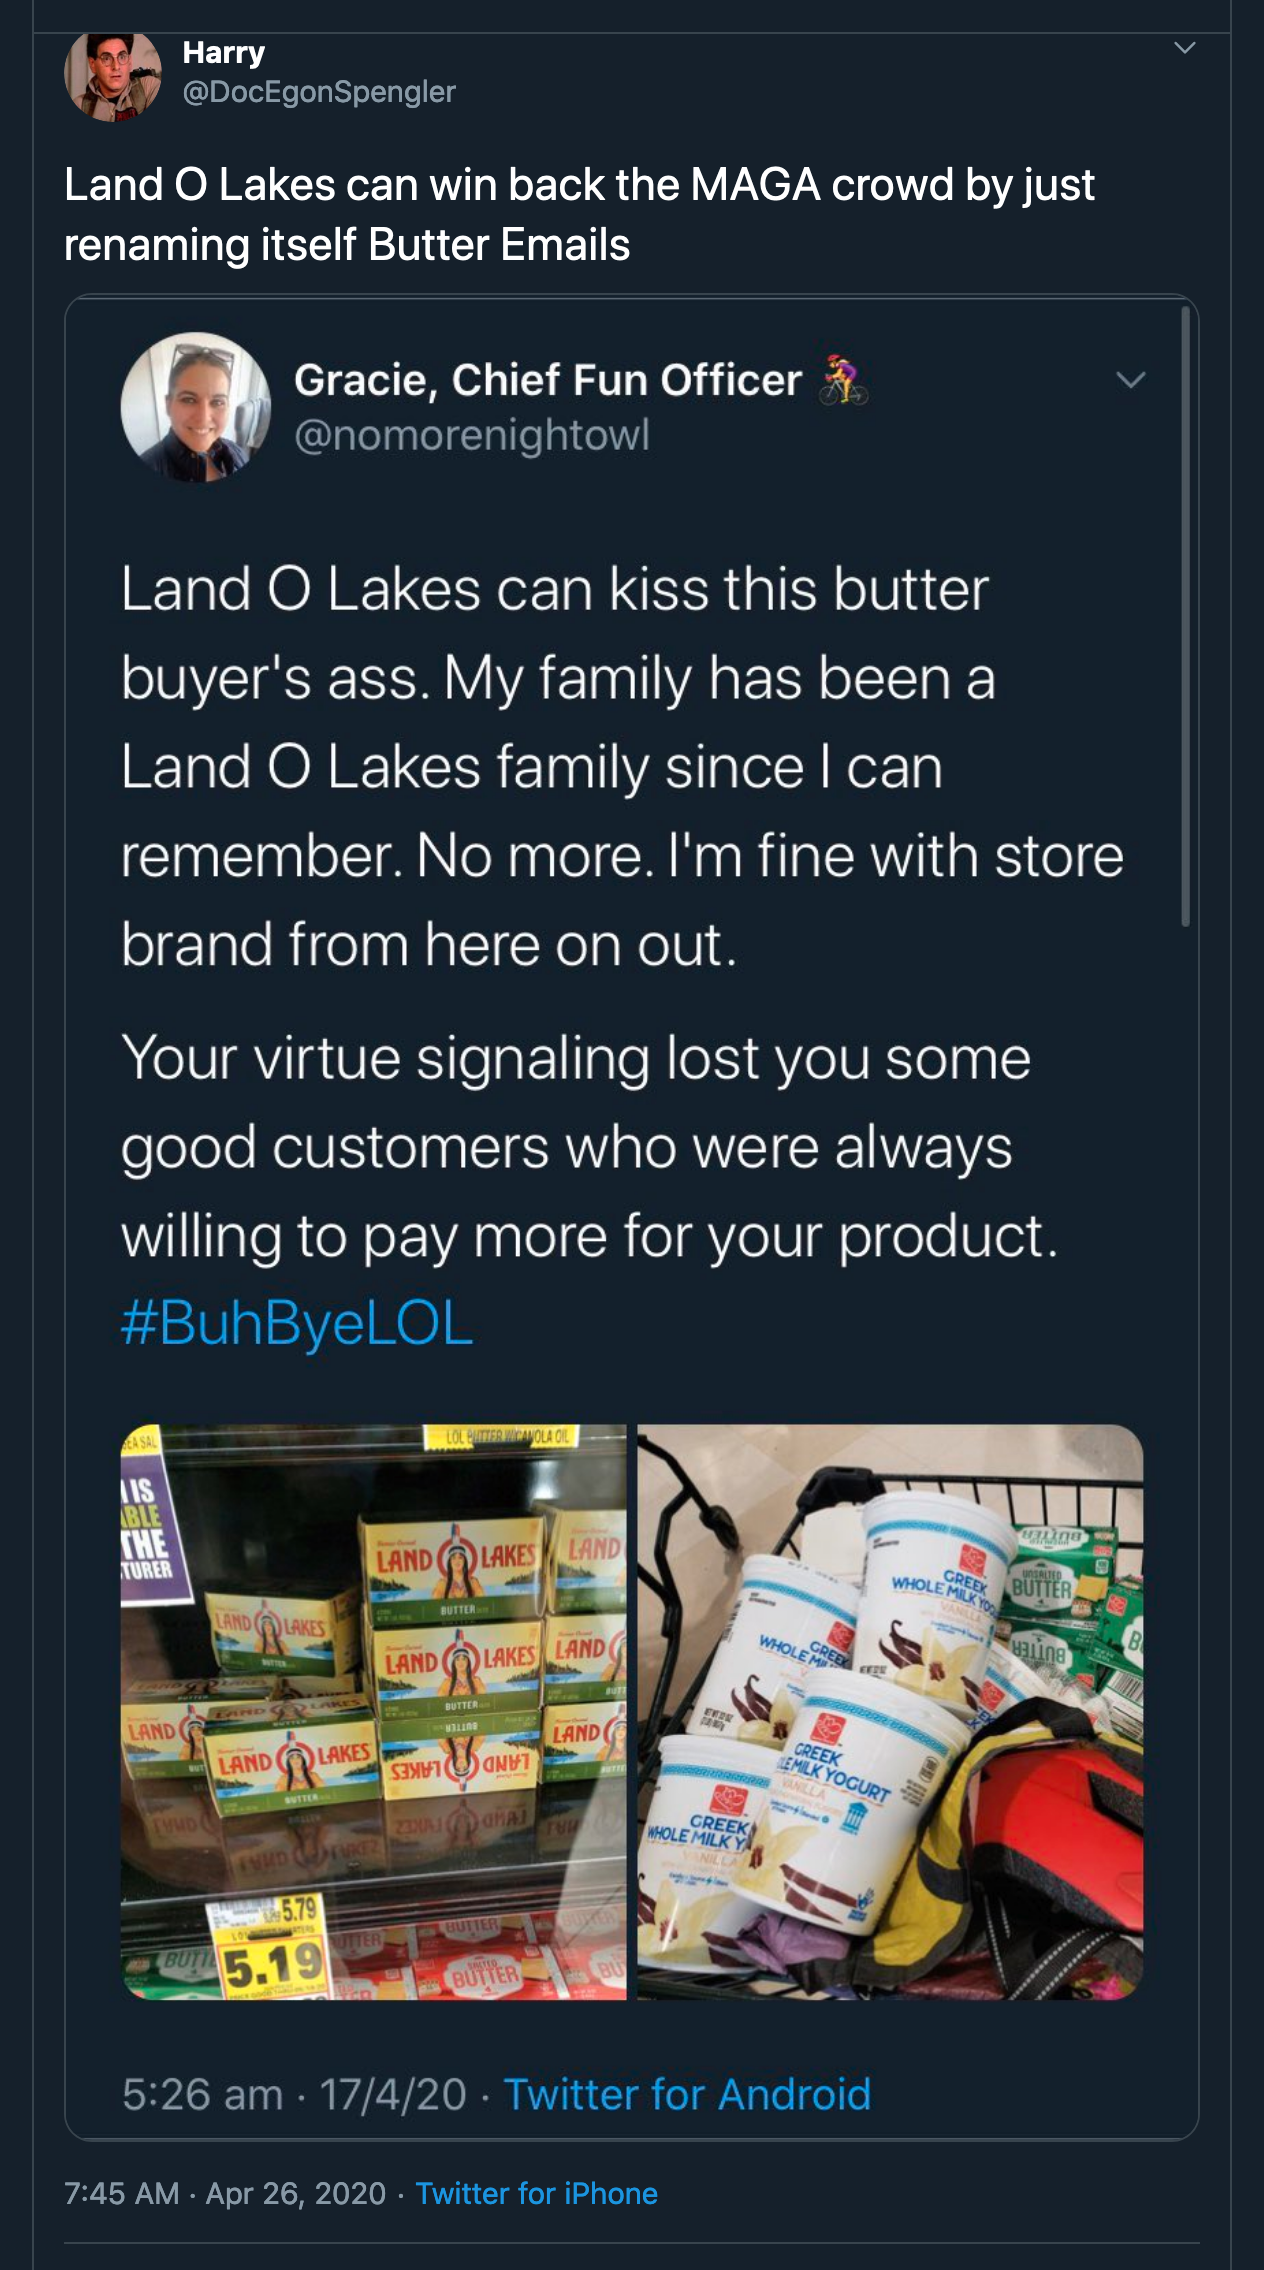 Land O Lakes can win back the MAGA crowd by just renaming itself Butter Emails